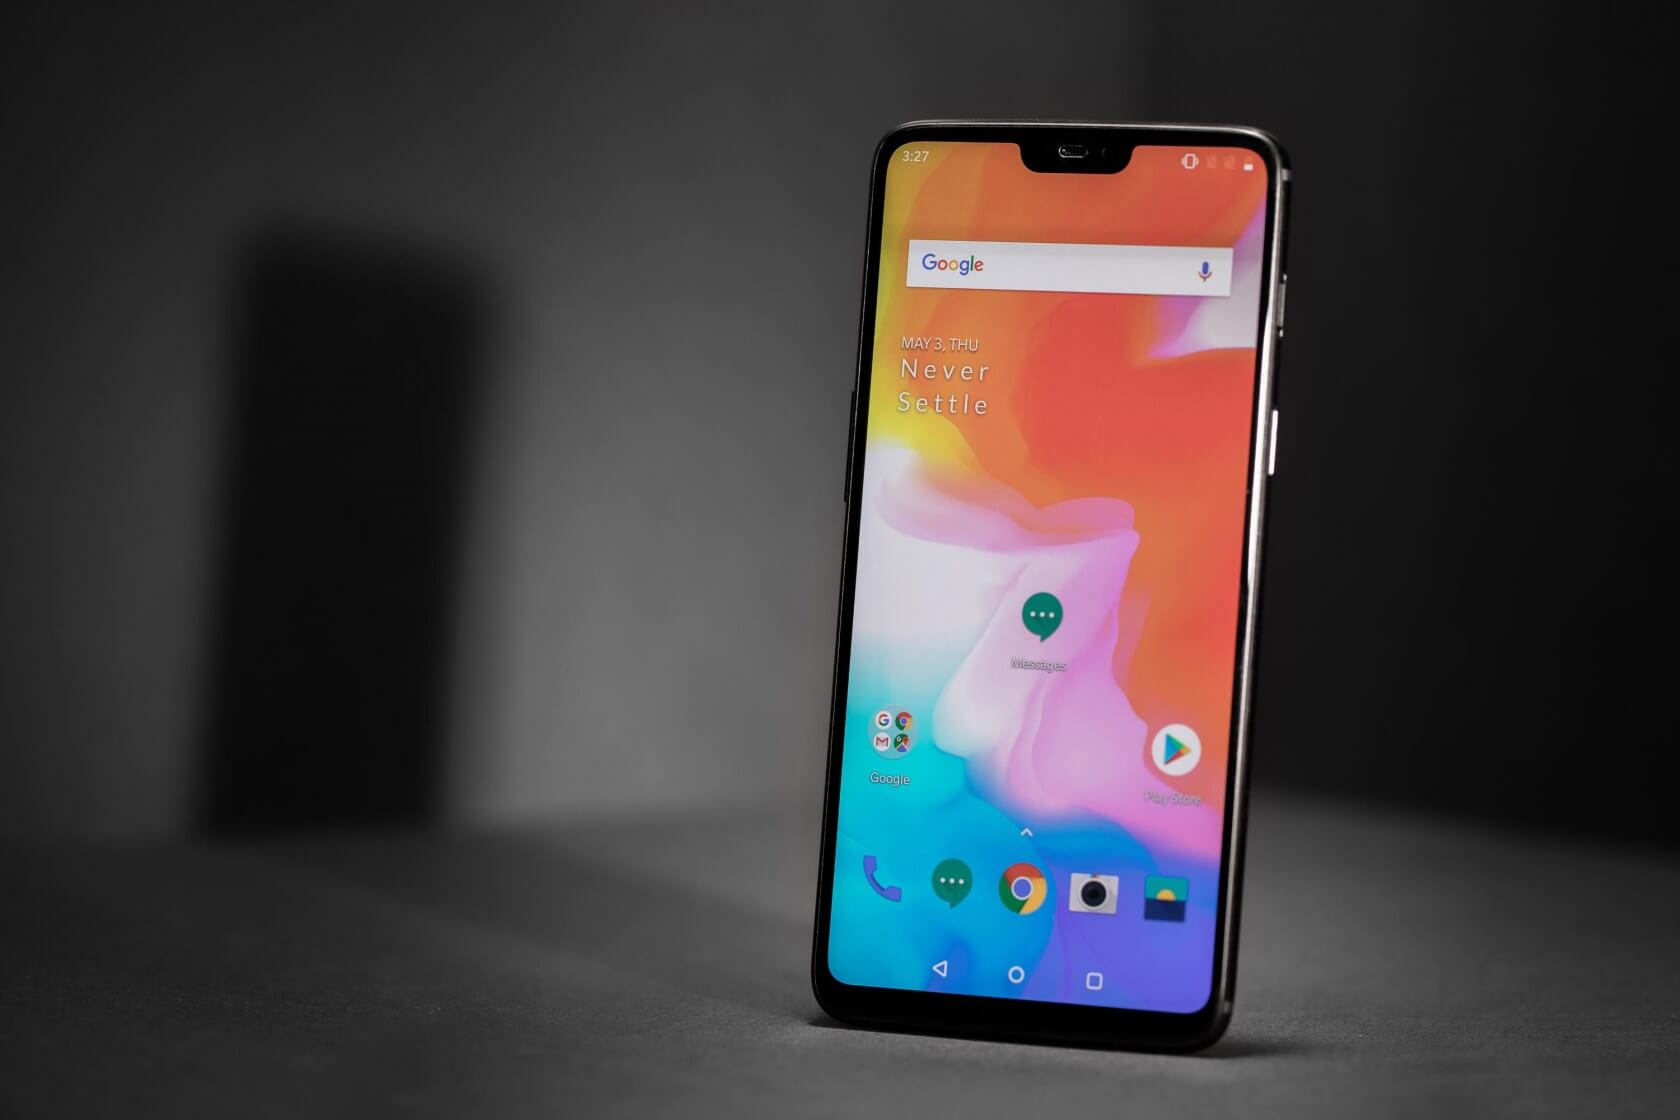 OnePlus may reveal a gaming-focused 5G smartphone prototype at MWC